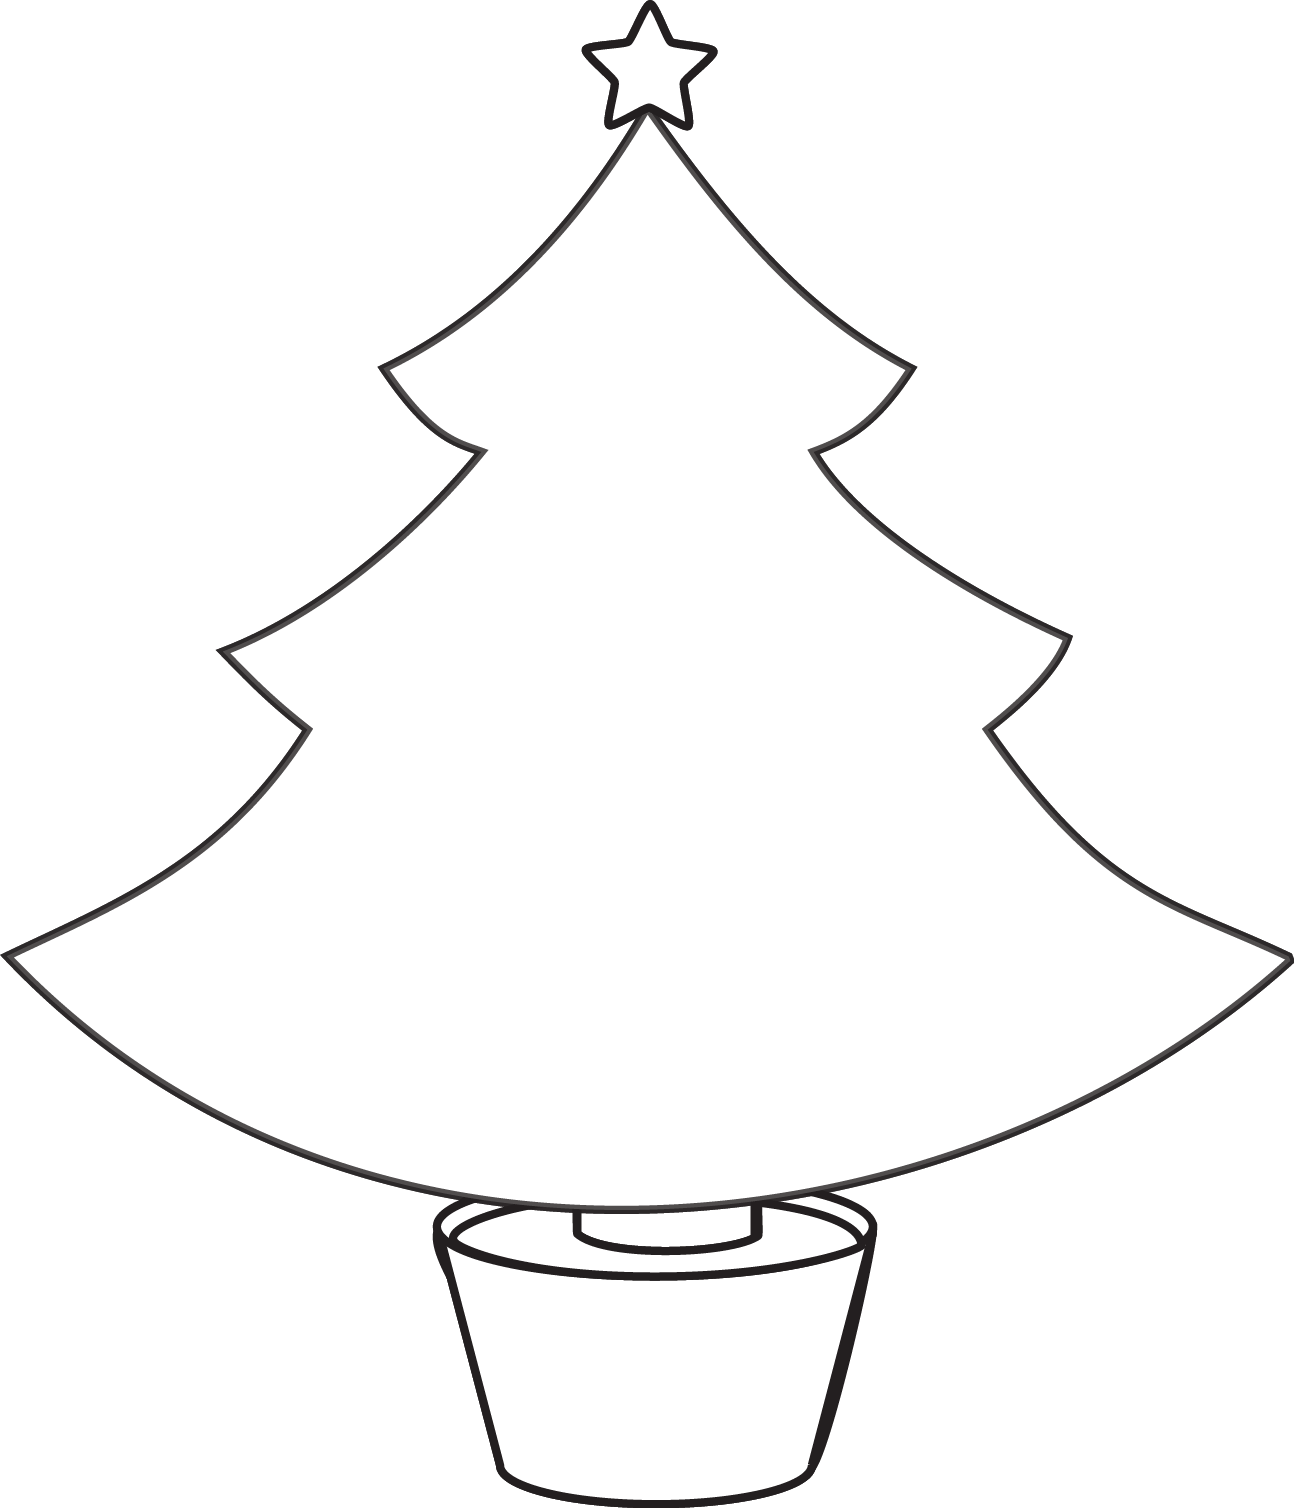 1294x1508 Christmas Tree Patterns For Kids Kids Coloring